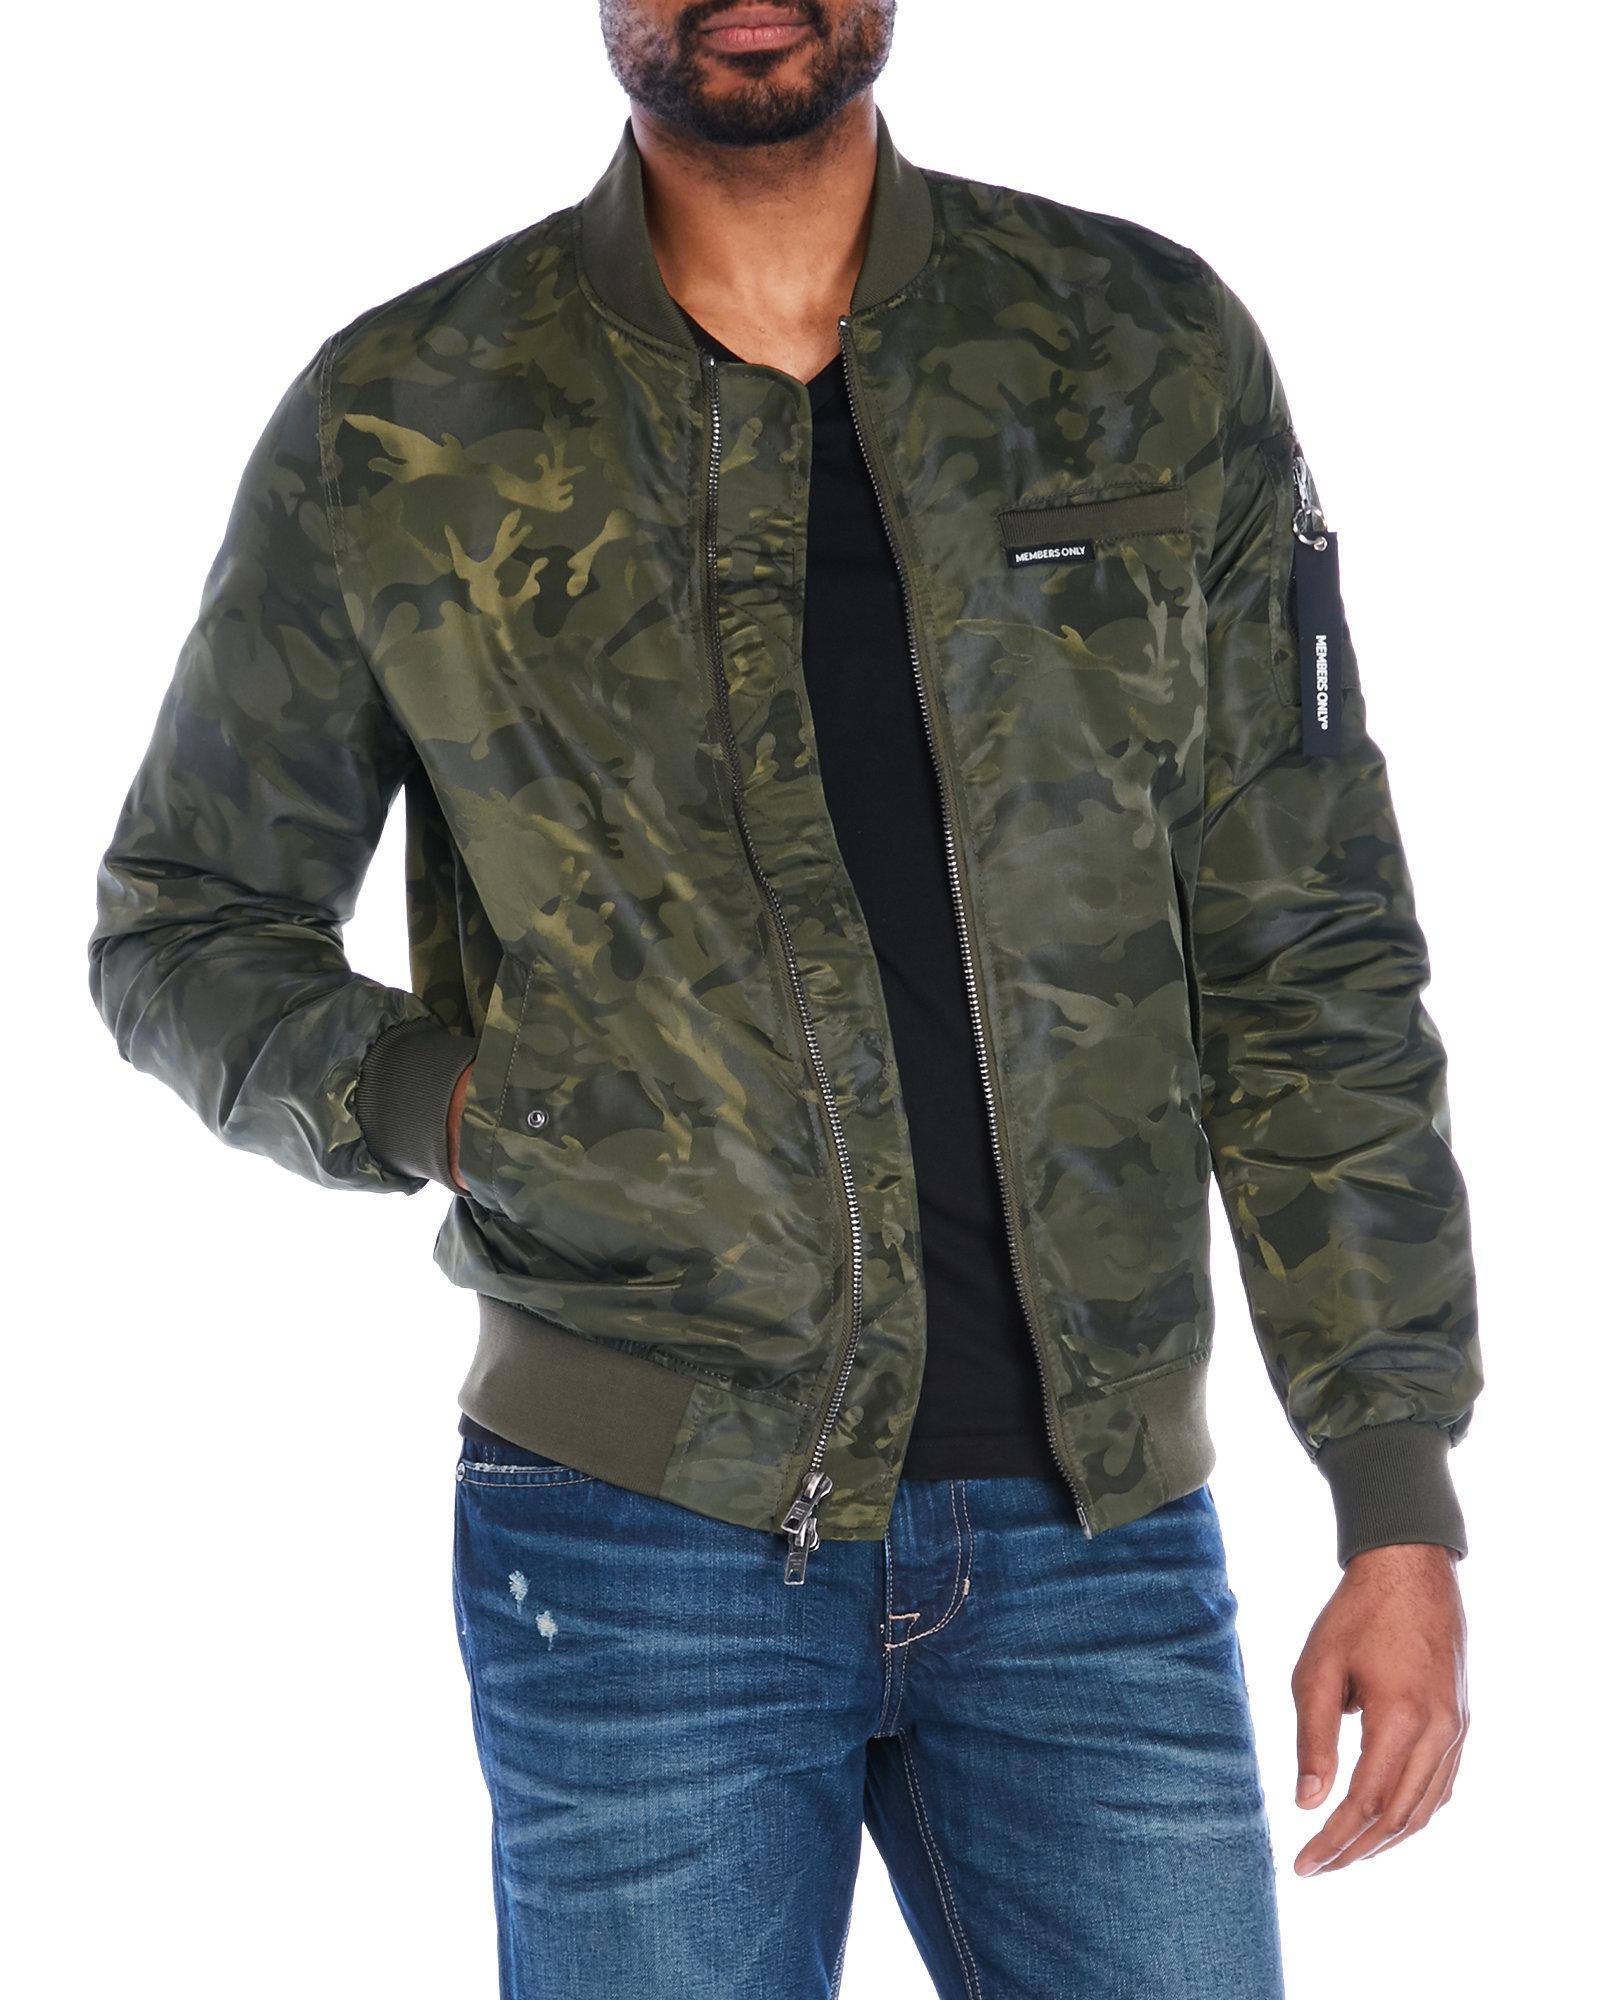 cba793421e9df Lyst - Members Only Camouflage Jacquard Bomber Jacket in Green for Men